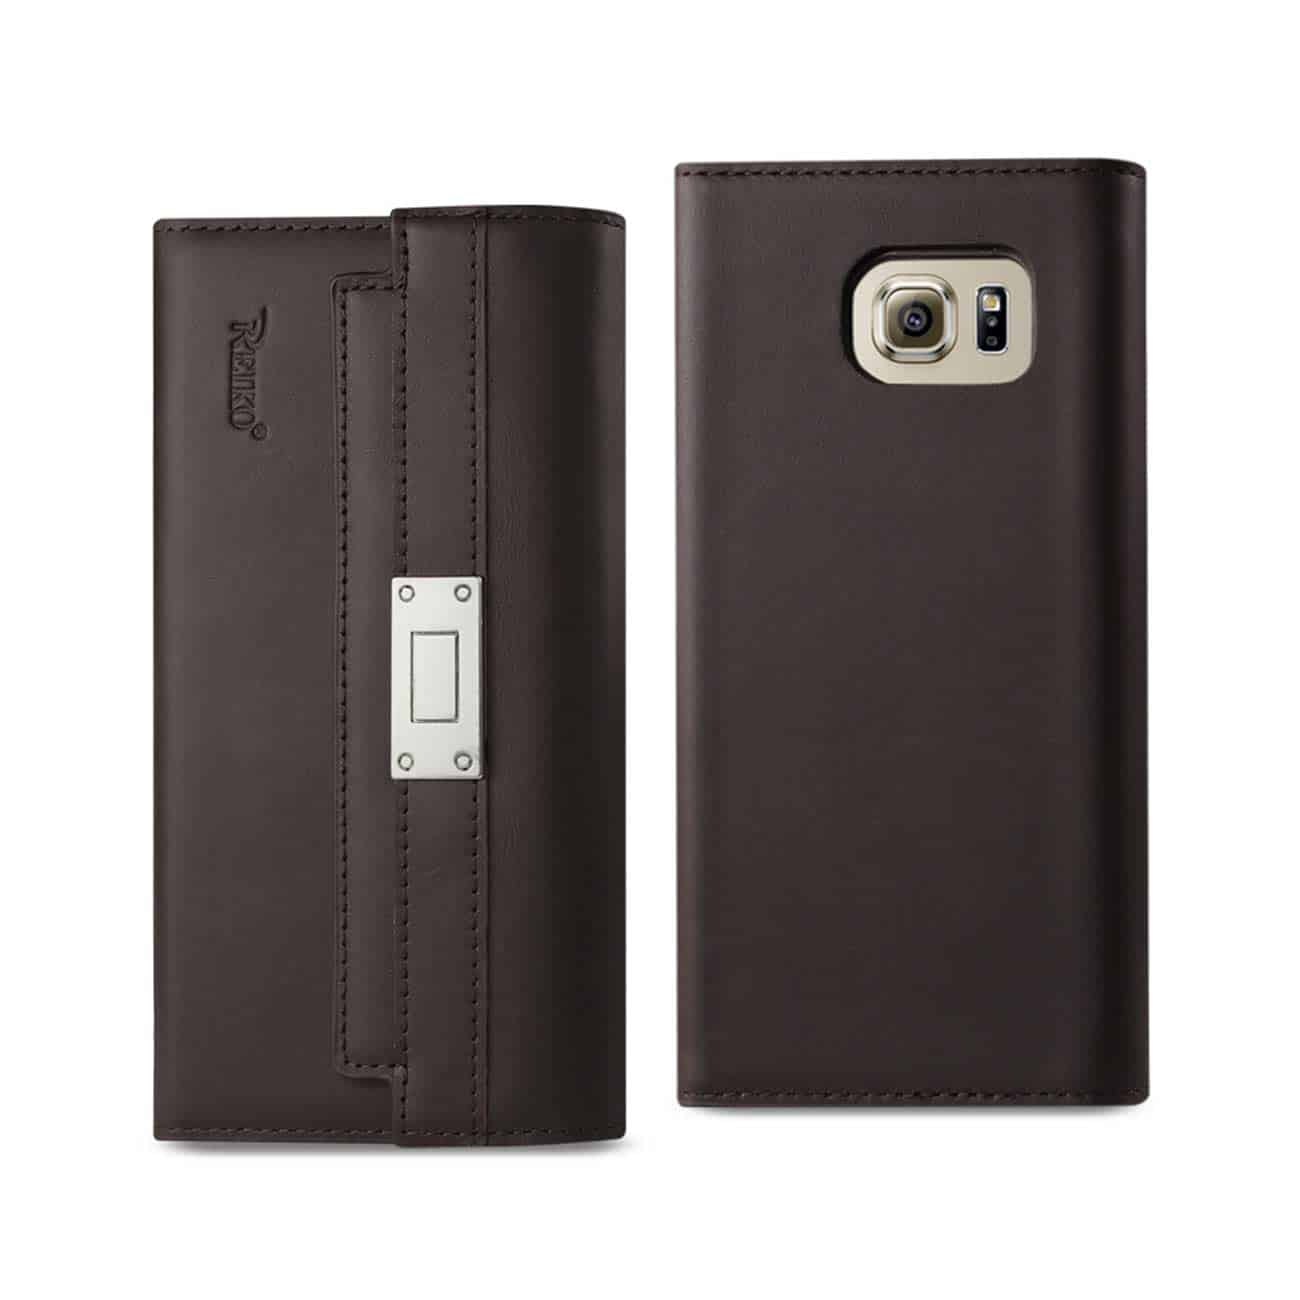 SAMSUNG GALAXY S6 GENUINE LEATHER RFID WALLET CASE AND METAL BUCKLE BELT IN UMBER